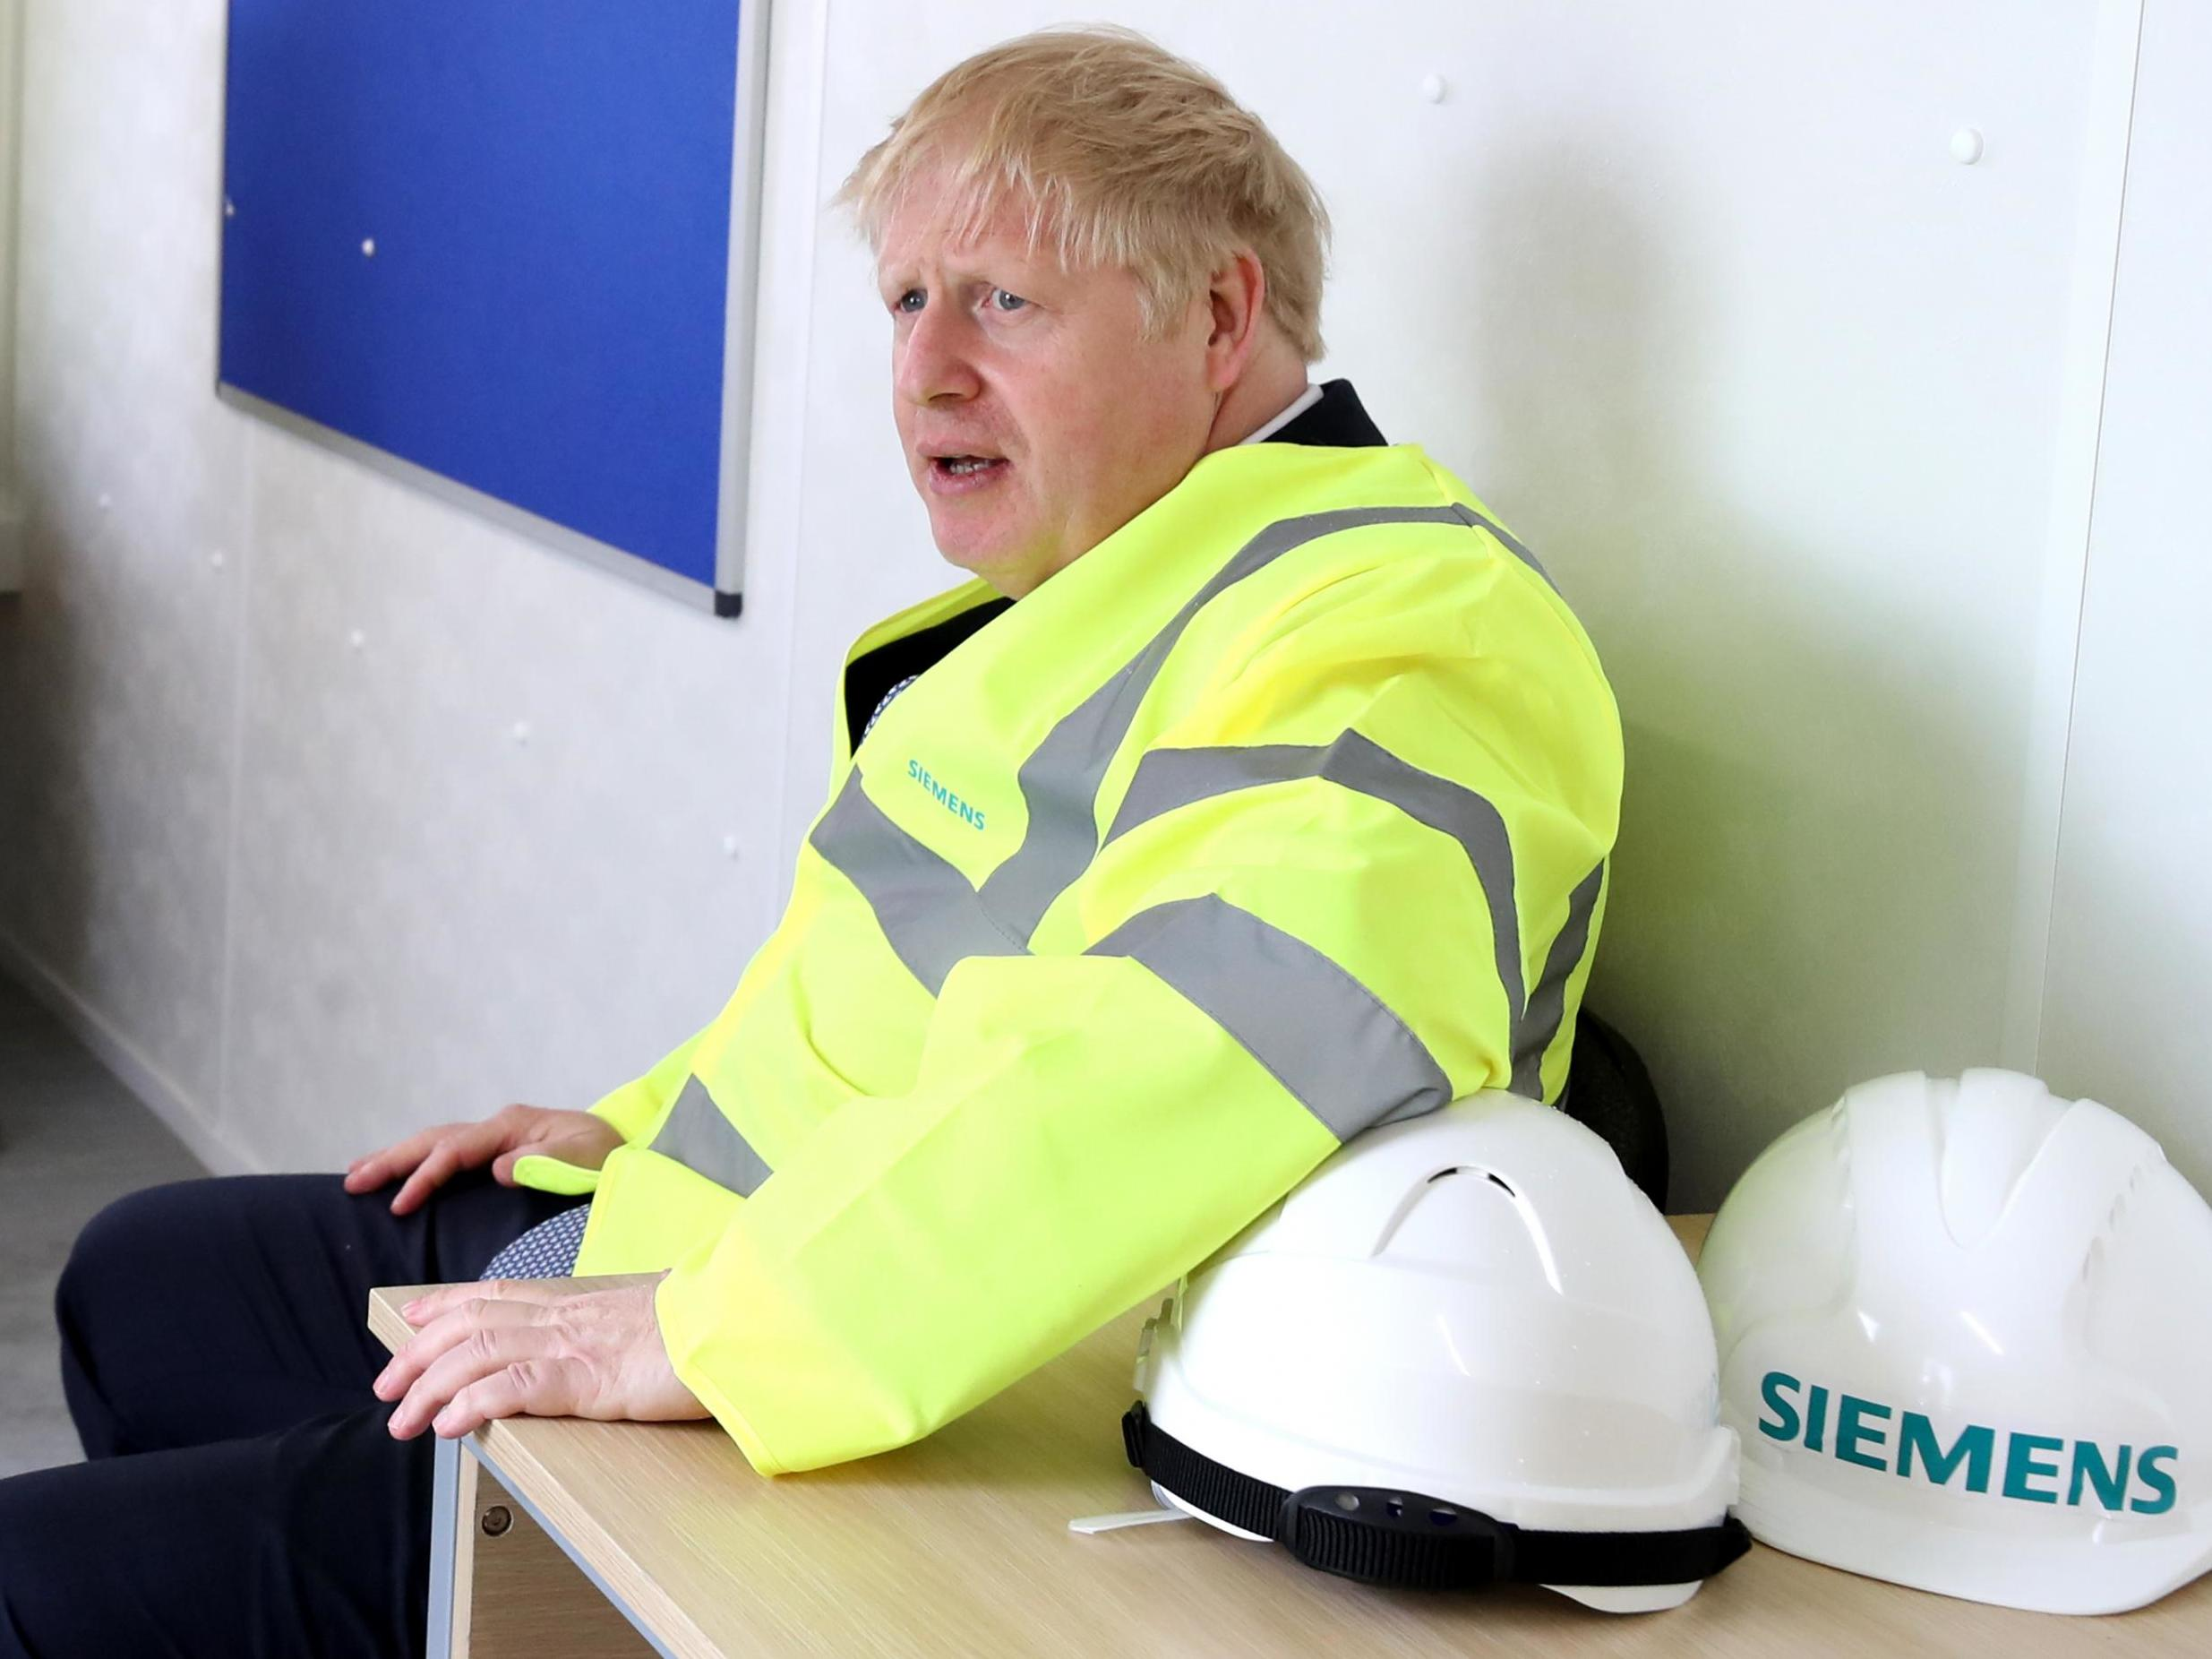 Boris Johnson refuses to apologise for blaming care homes for coronavirus death toll | The IndependentShapeleftrightShape